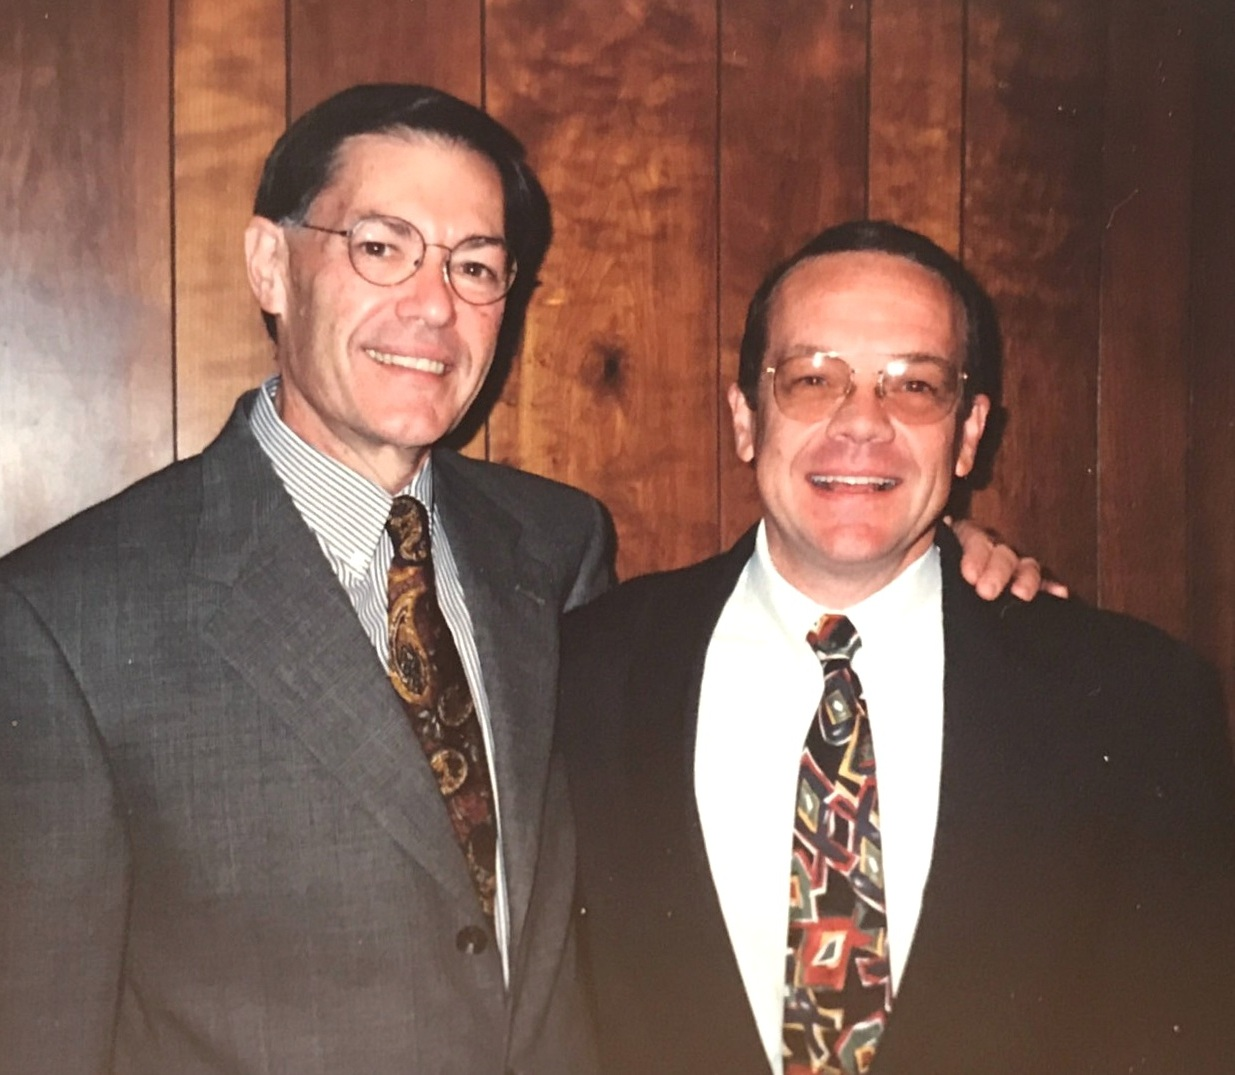 Former Executive Director Rev. Dr. Bill Bryant with Rev. Dr. Jefferson Ritchie